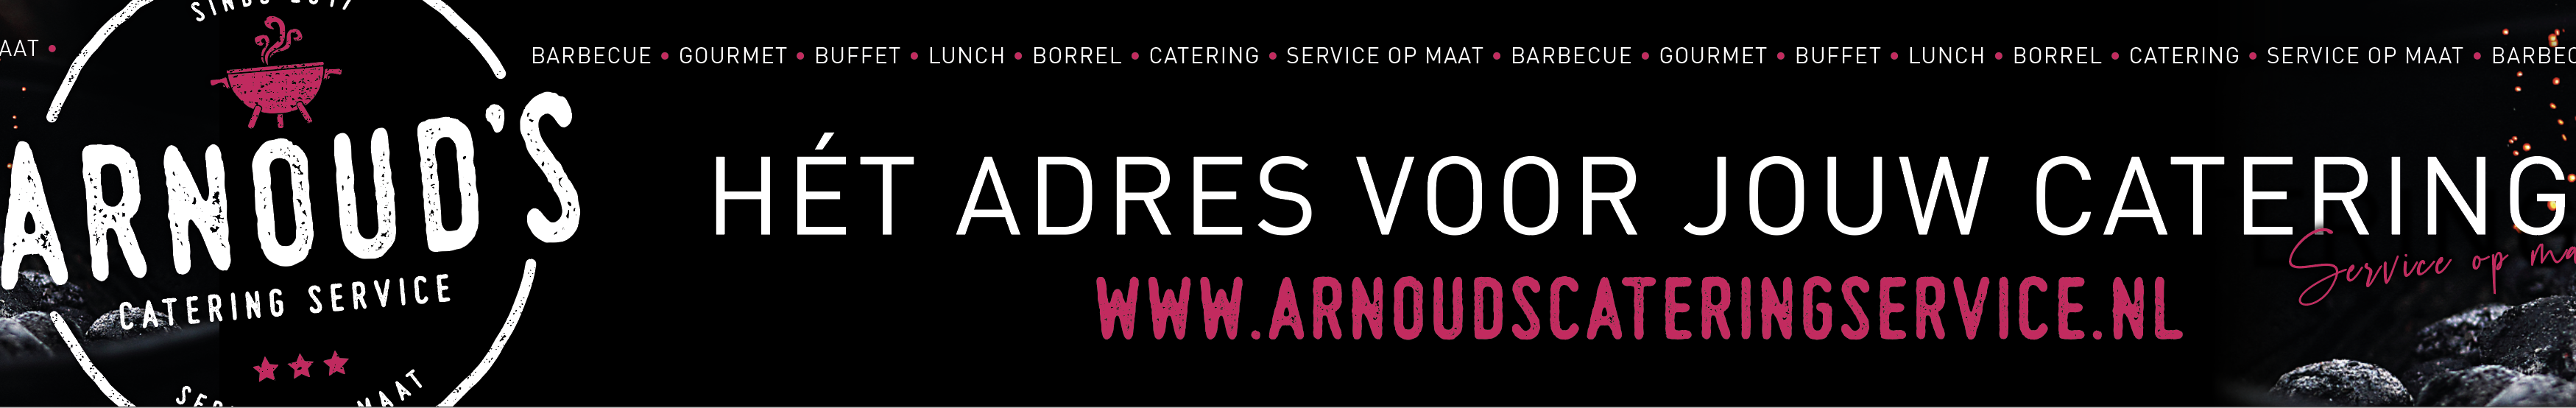 Arnouds Catering Service